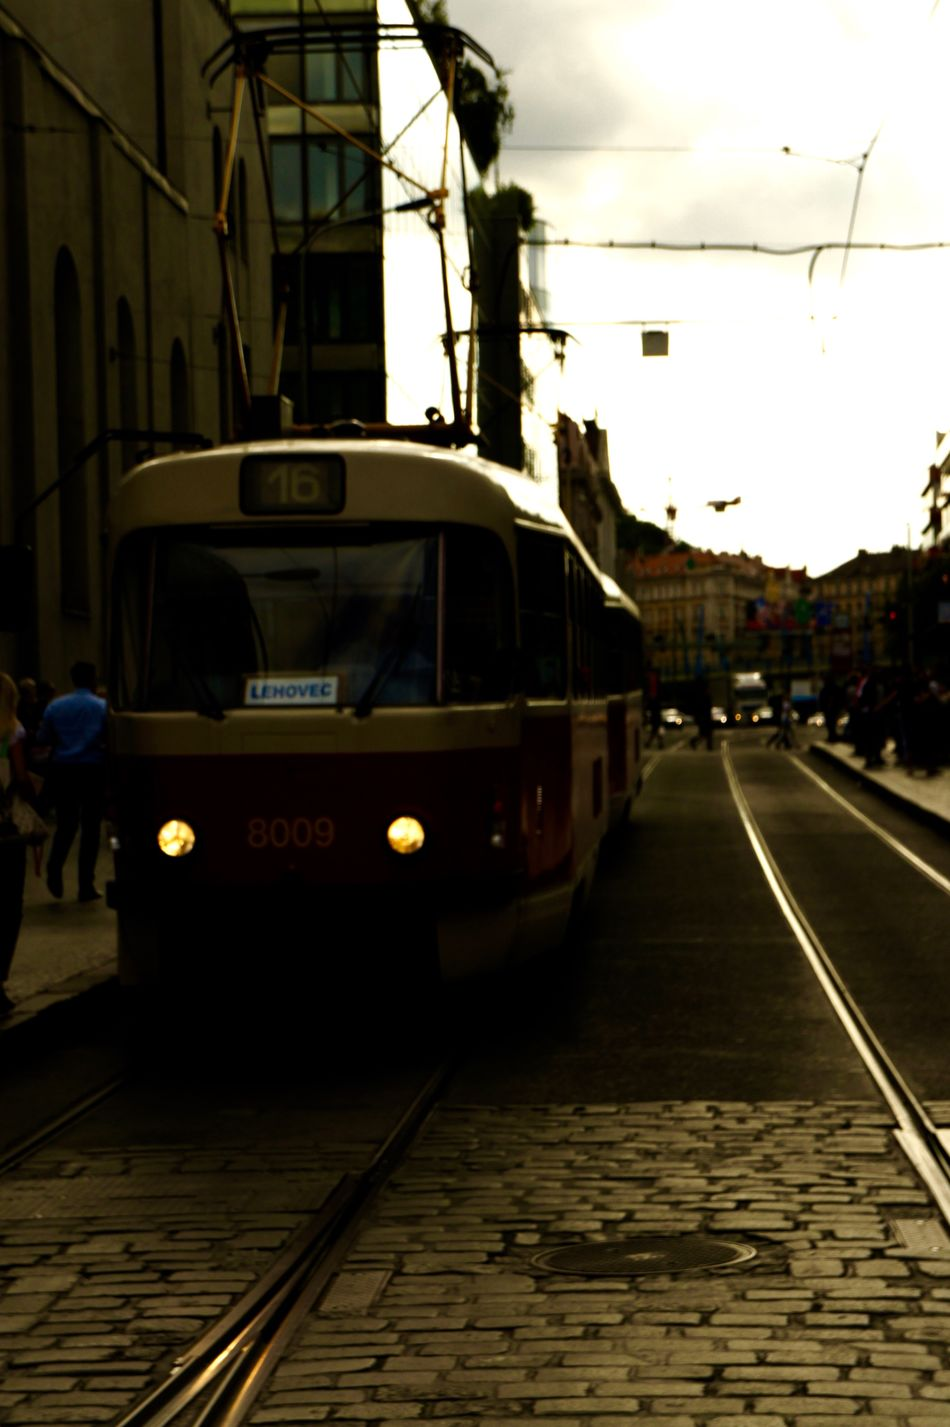 #16 #cable Car #City #city Life #late Summer #Prague #Tracks #tramway